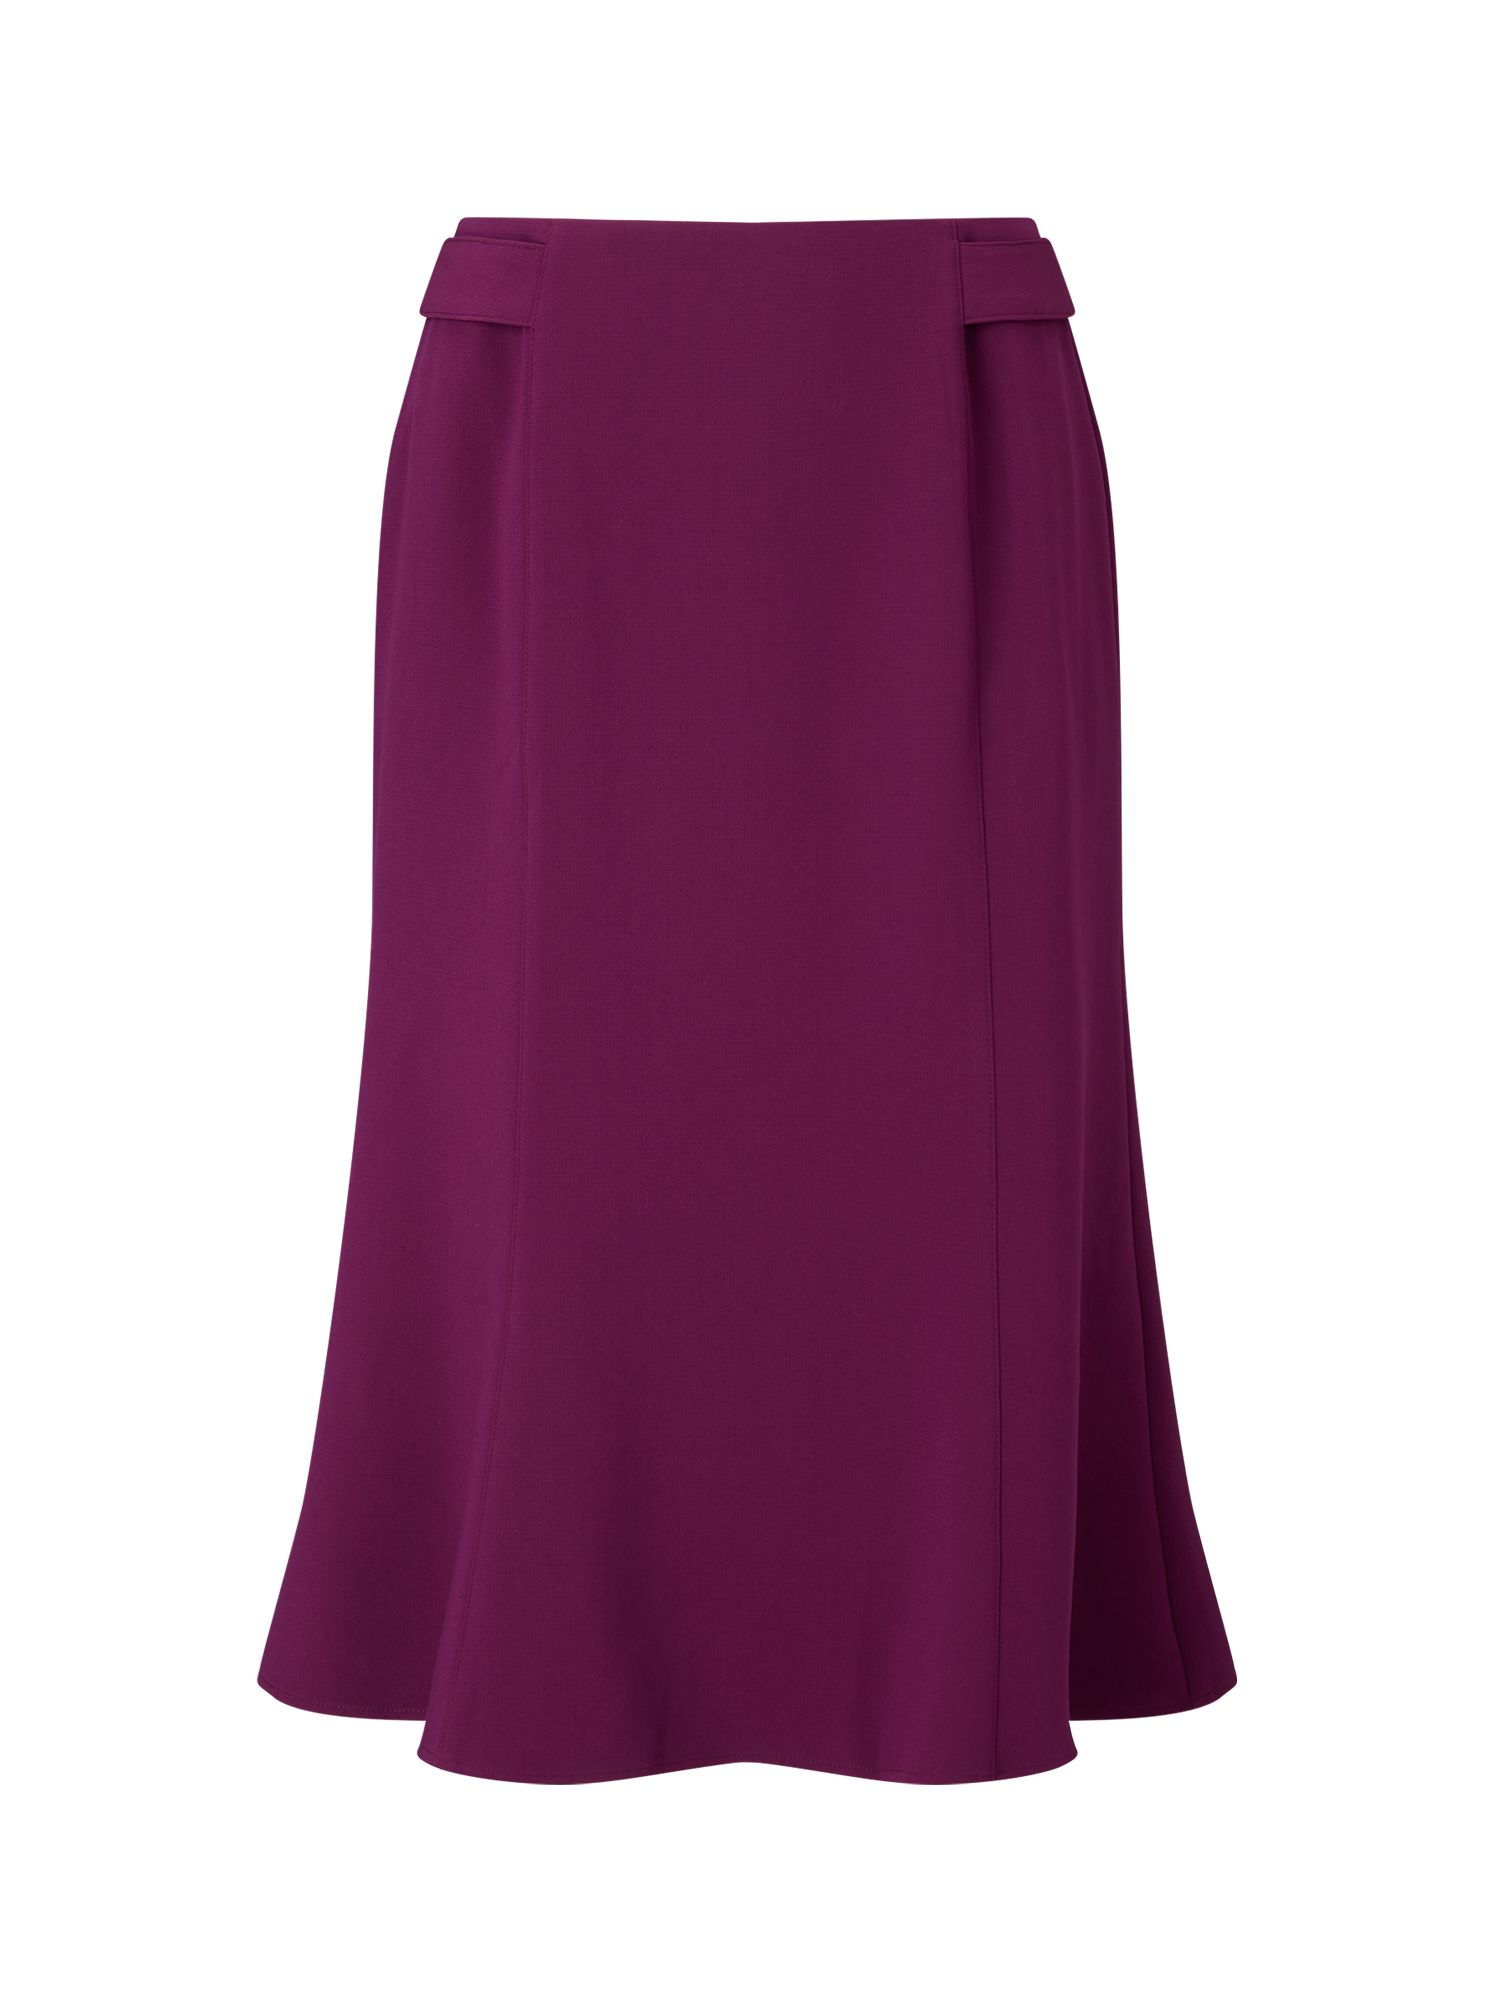 Eastex Merlot Fit And Flare Skirt, Dark Purple